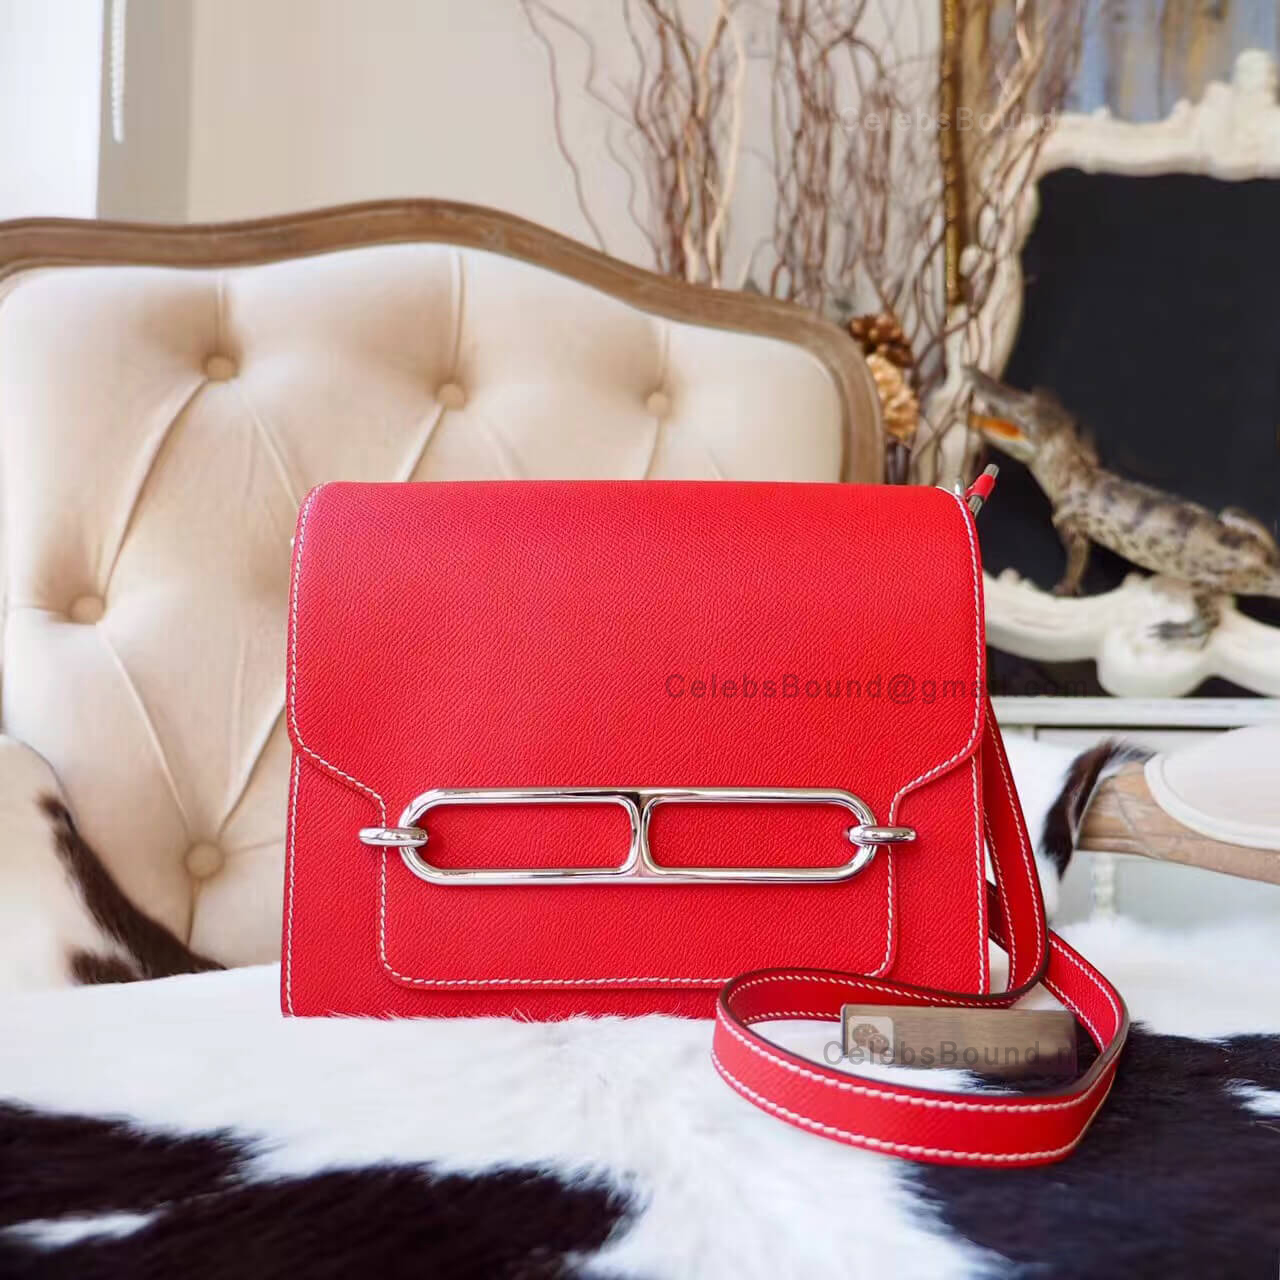 Replica Hermes Roulis 23 Bag in q5 Rouge Casaque Epsom PHW